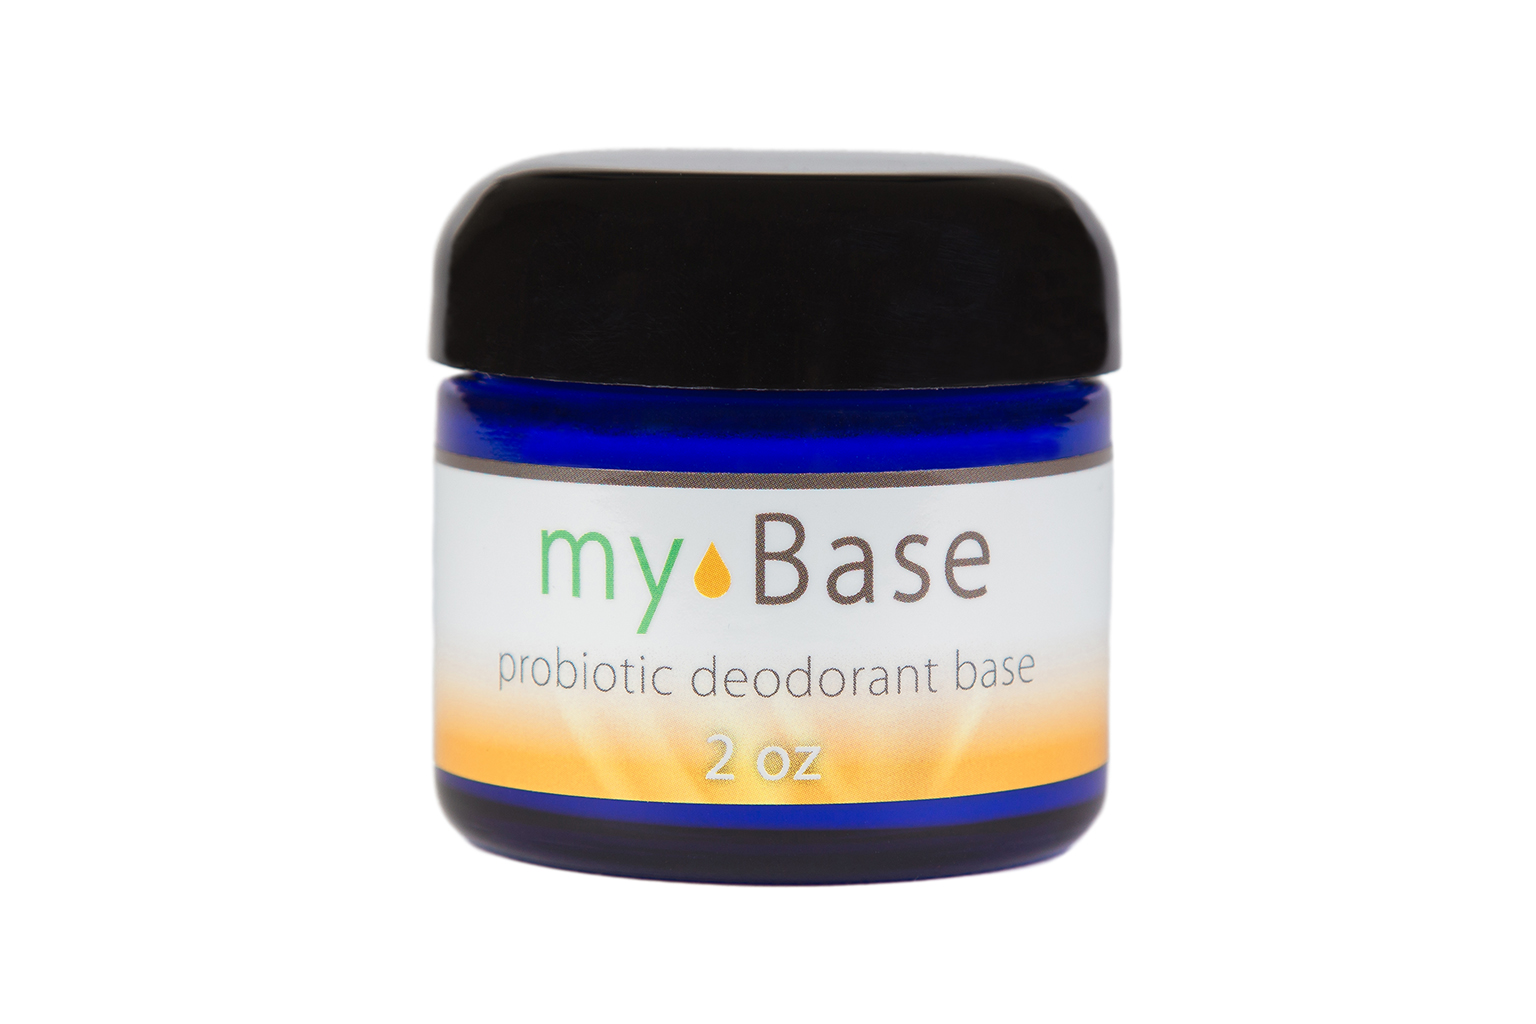 Utah Product Photographer | Utah Product Photography | Product Photography | myBase Products | Sara Vaz Photography | Essential Oils